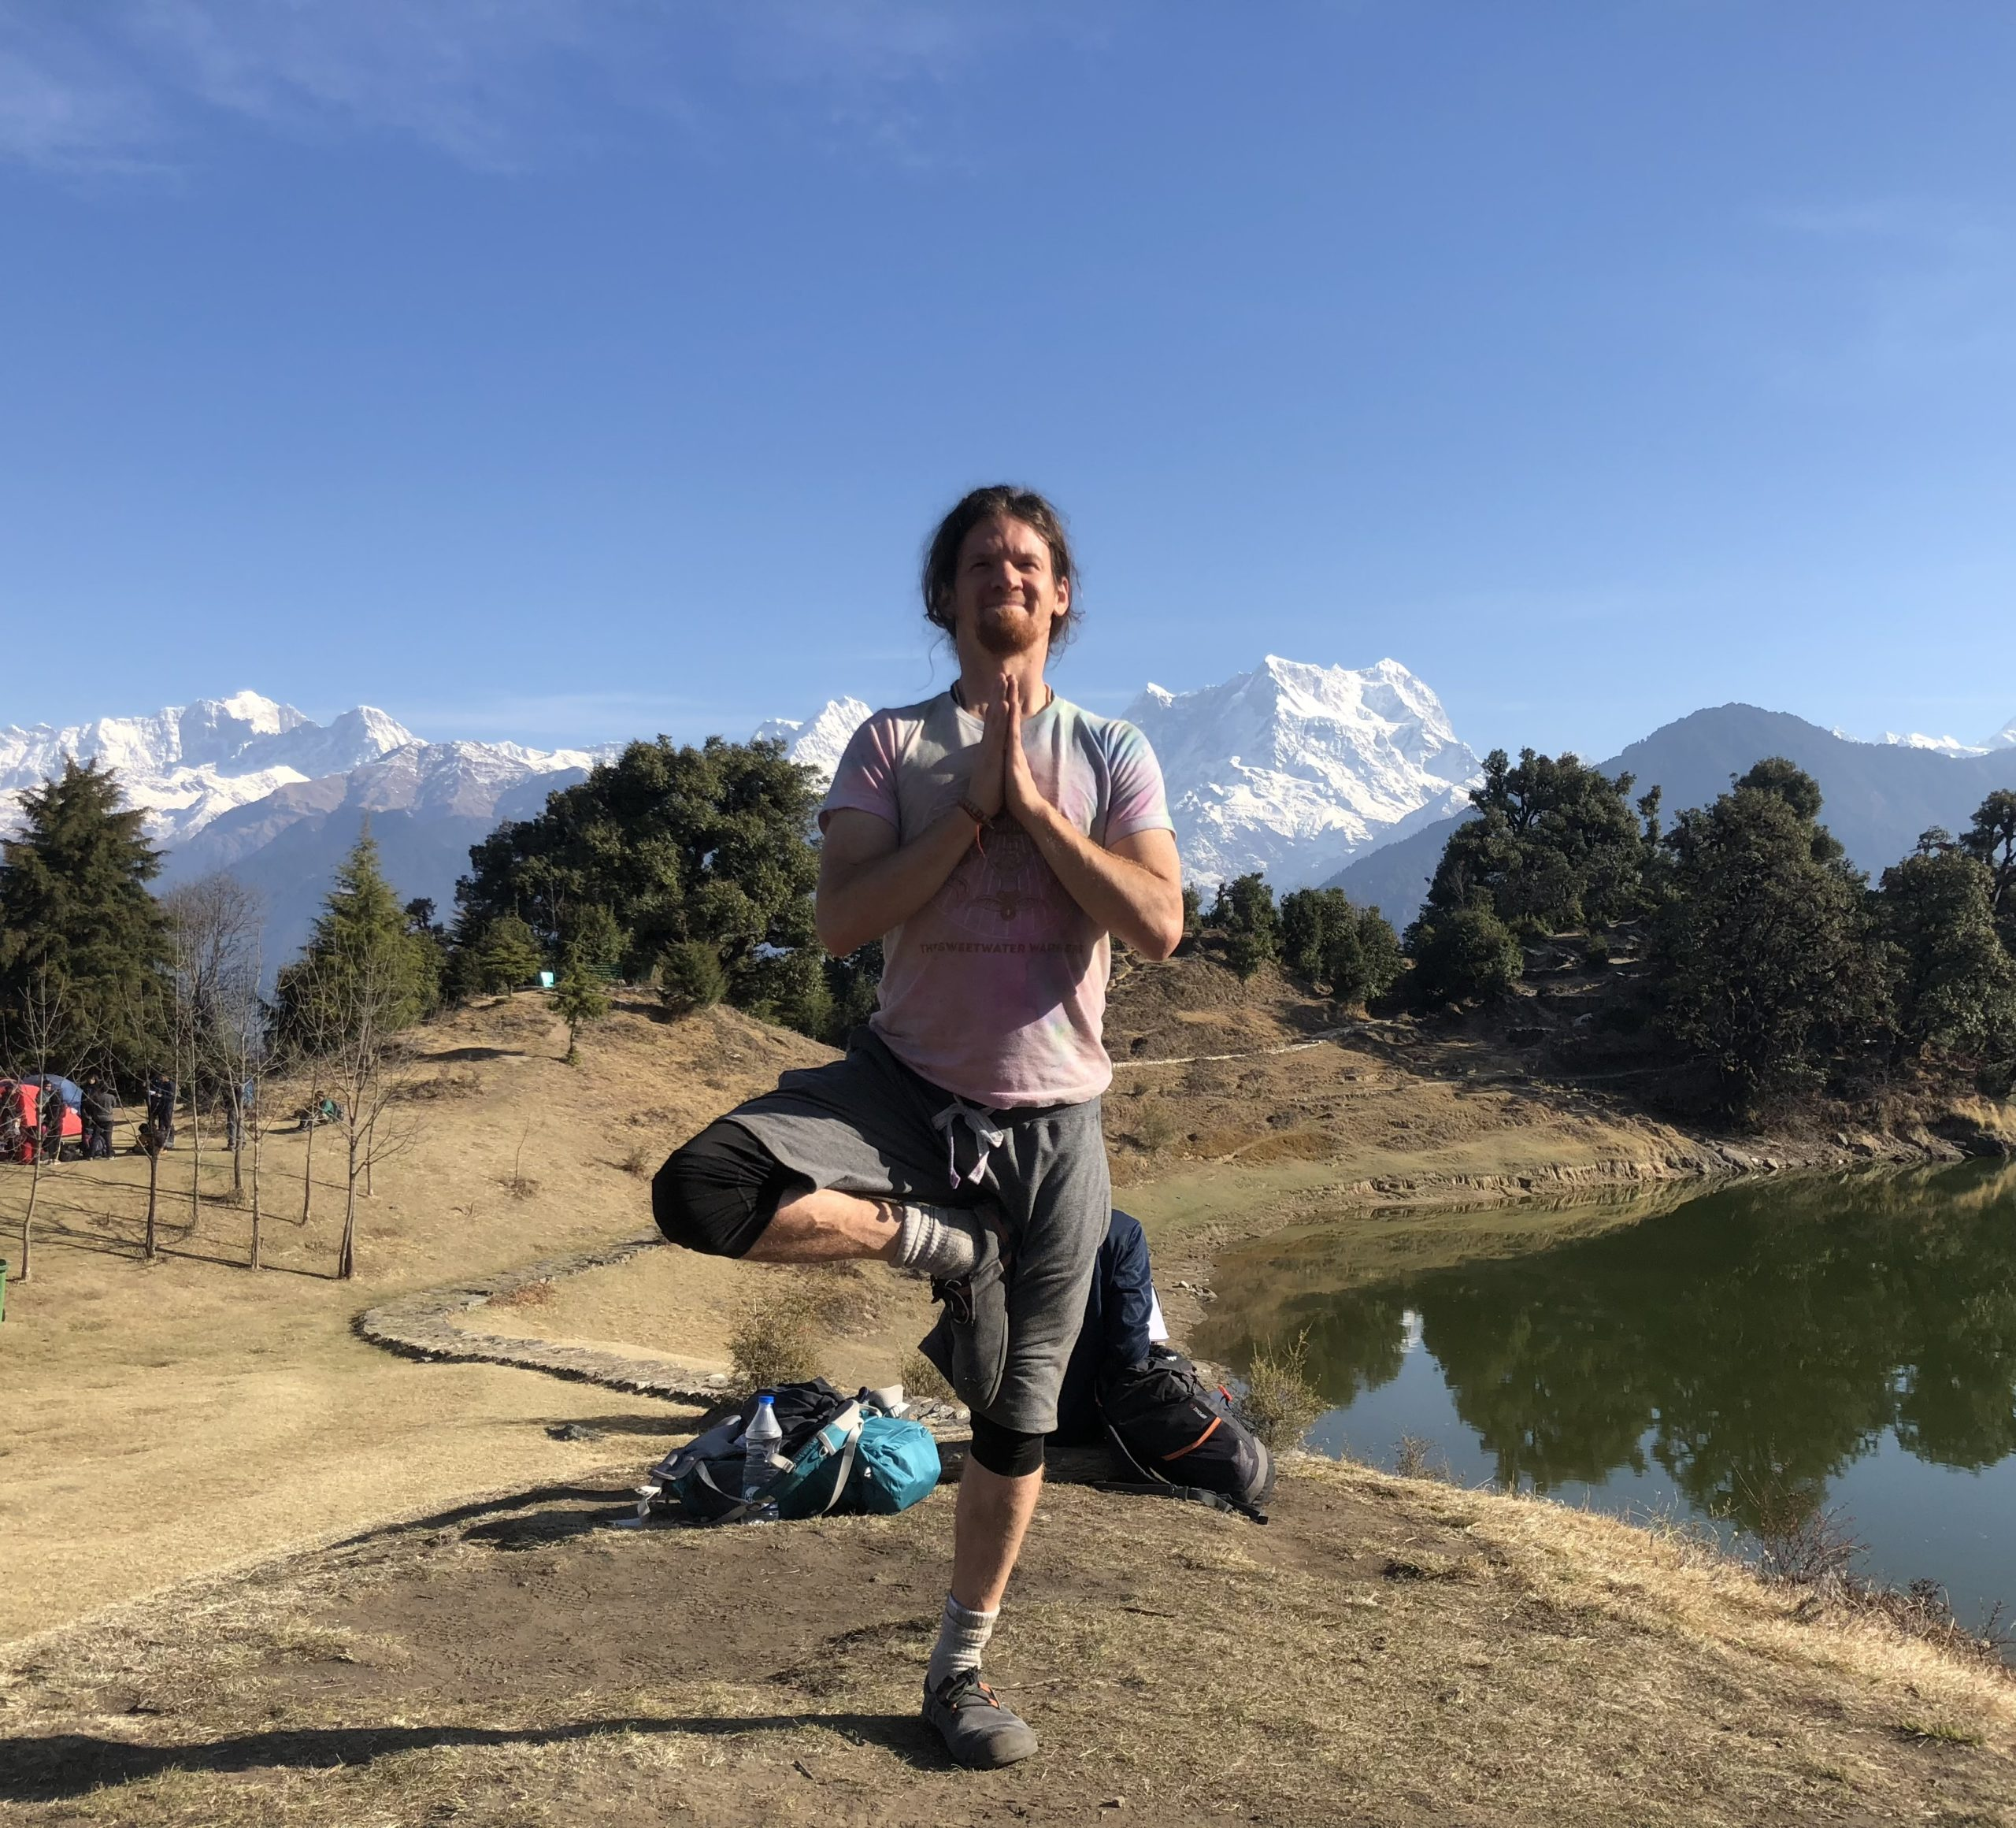 Yoga instructor joe in front of mountains.